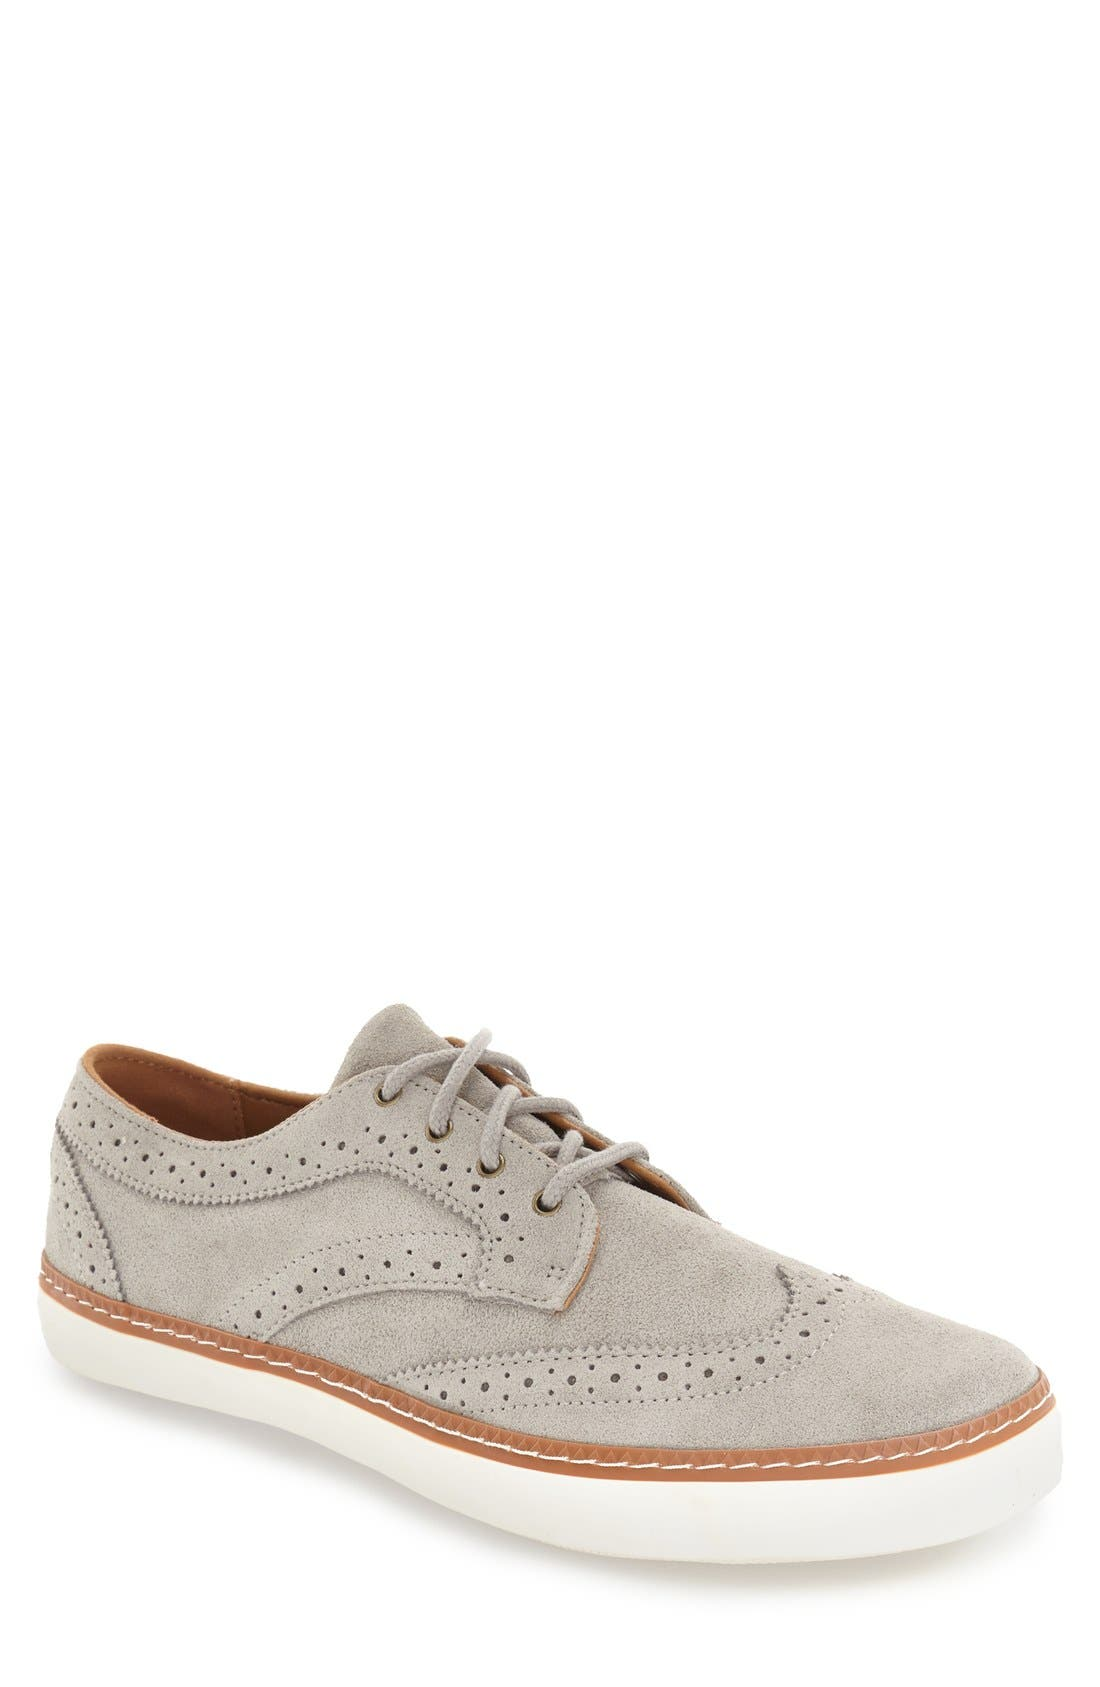 J SHOES Novello Wingtip Sneaker